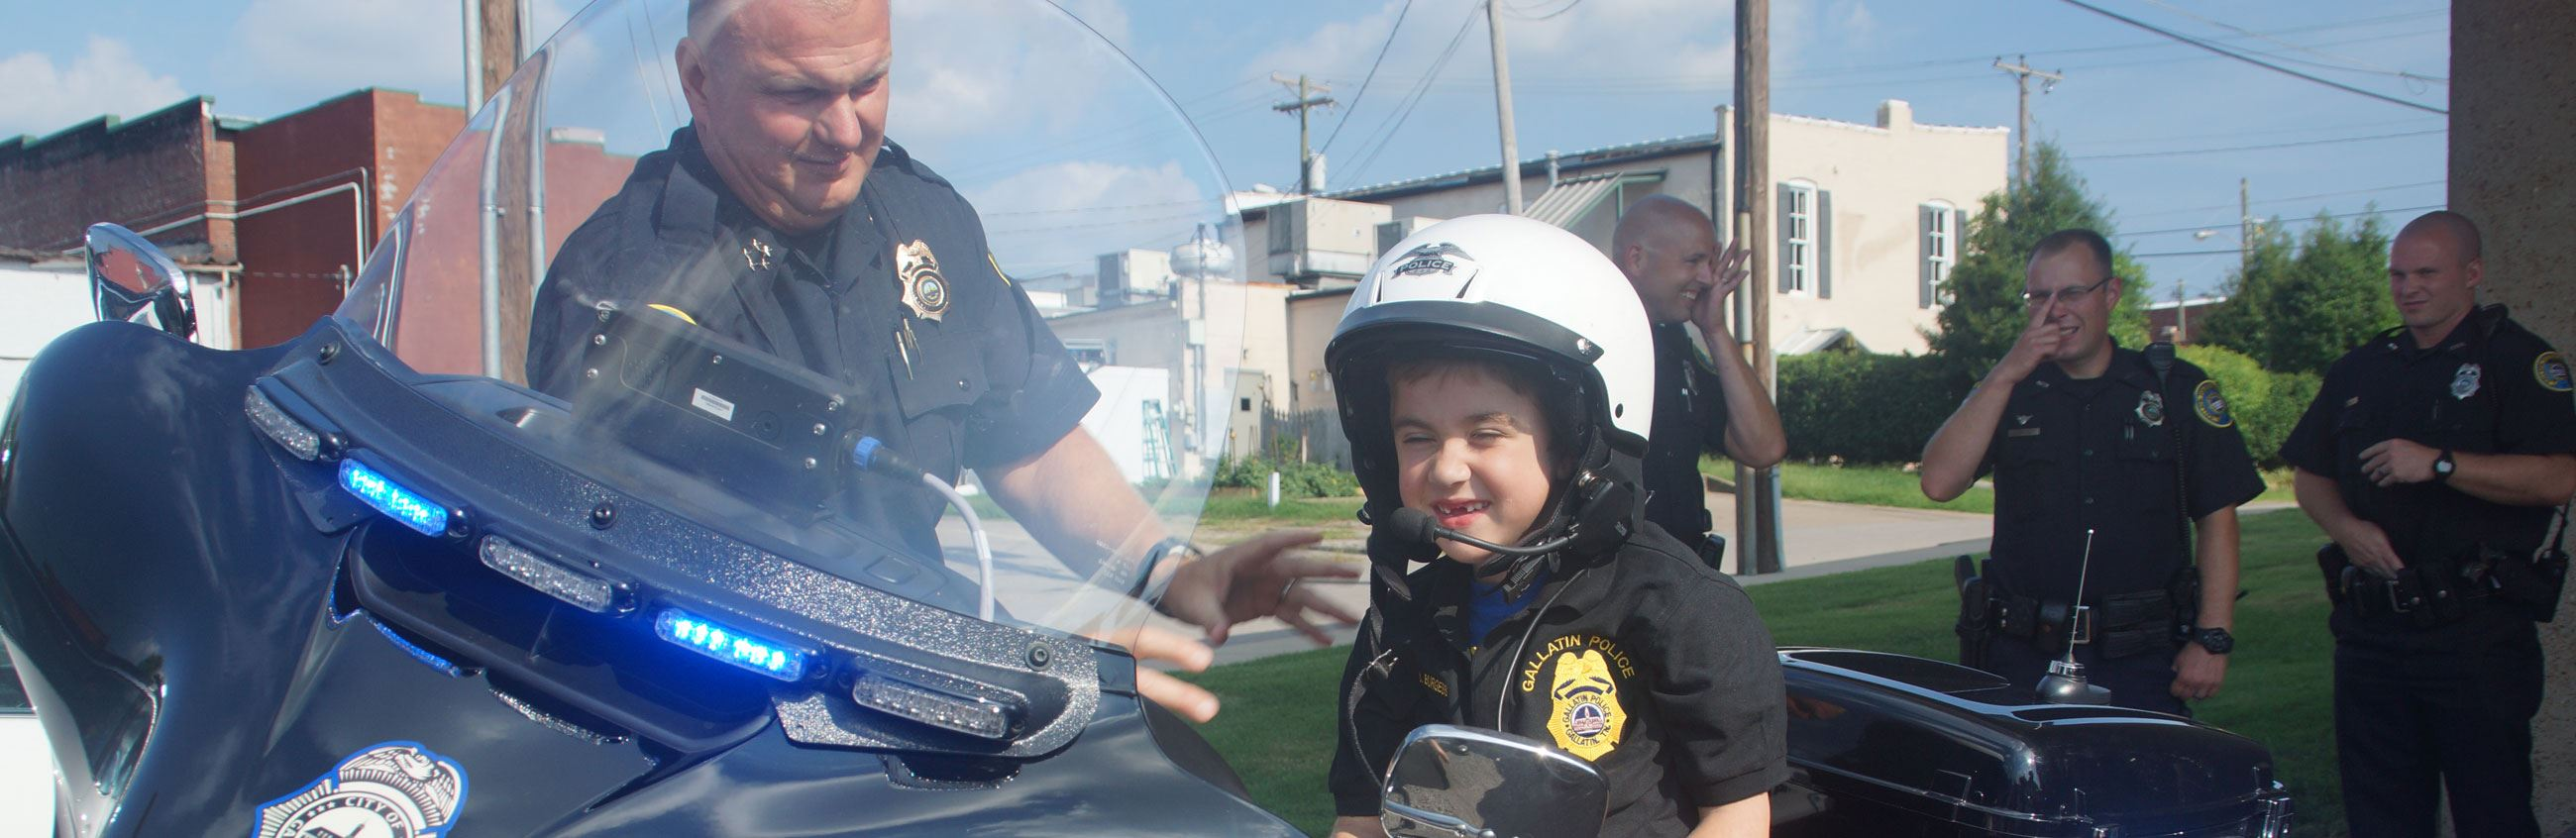 Chief Bandy with kid on Motorcycle